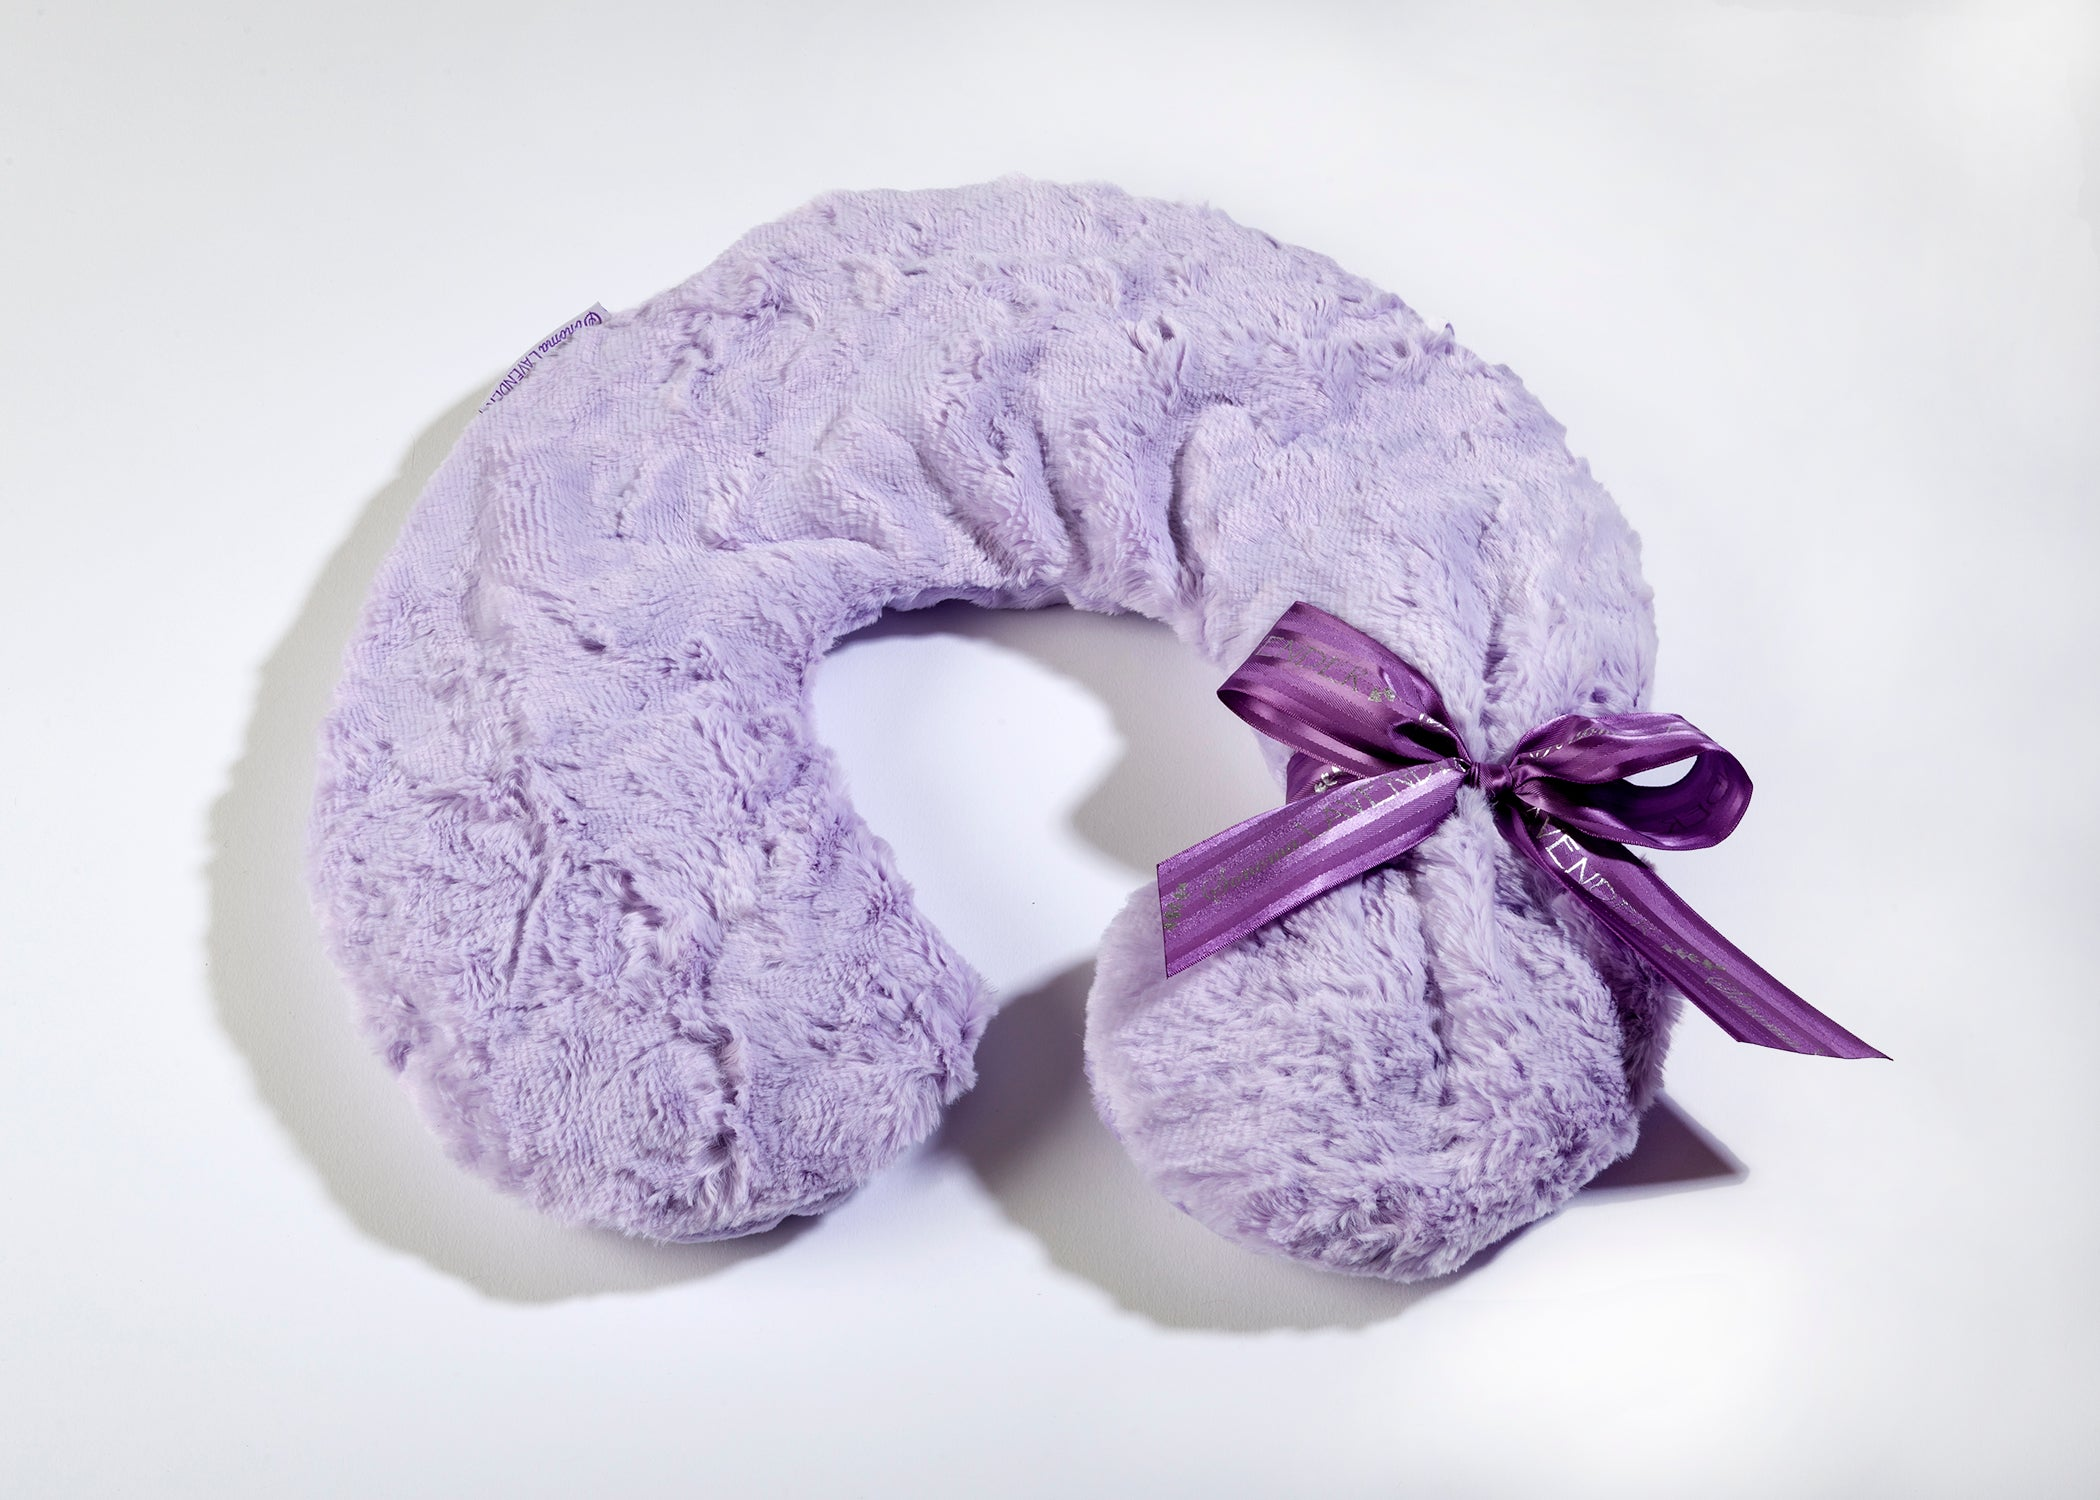 Lavender Spa Neck Pillow in Lavender Luxe